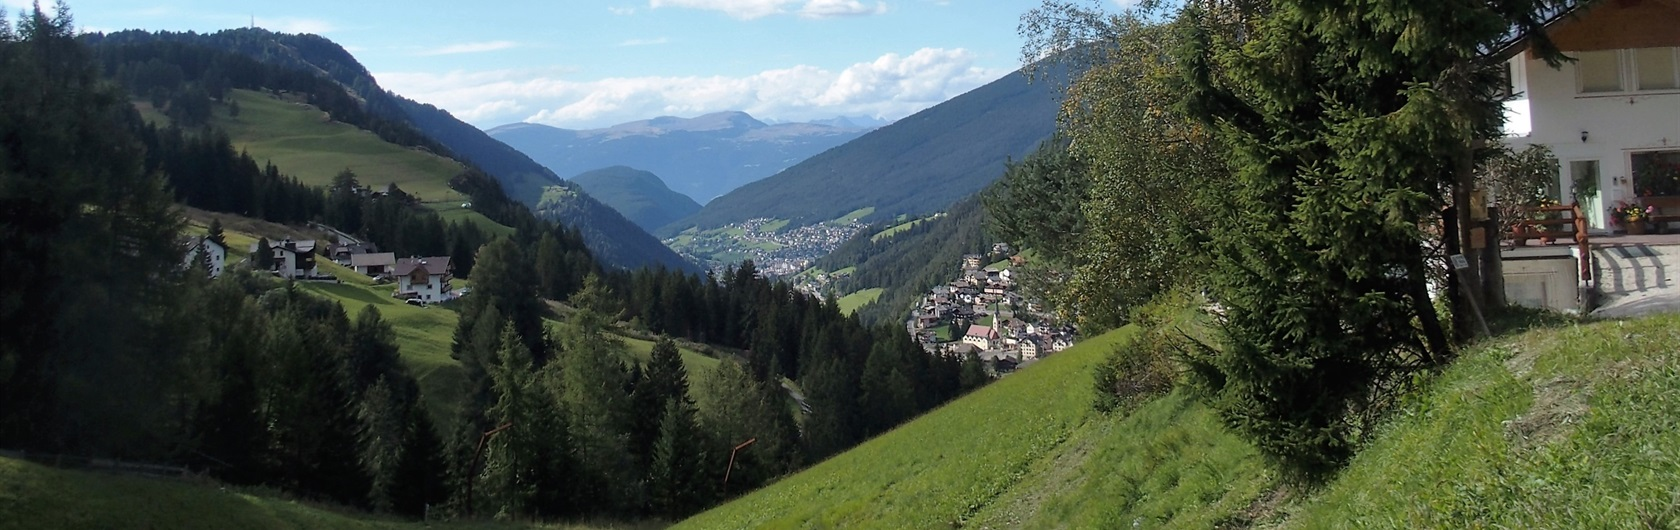 1. Northern Italy: Dolomites, six days walking in the South Tyrol